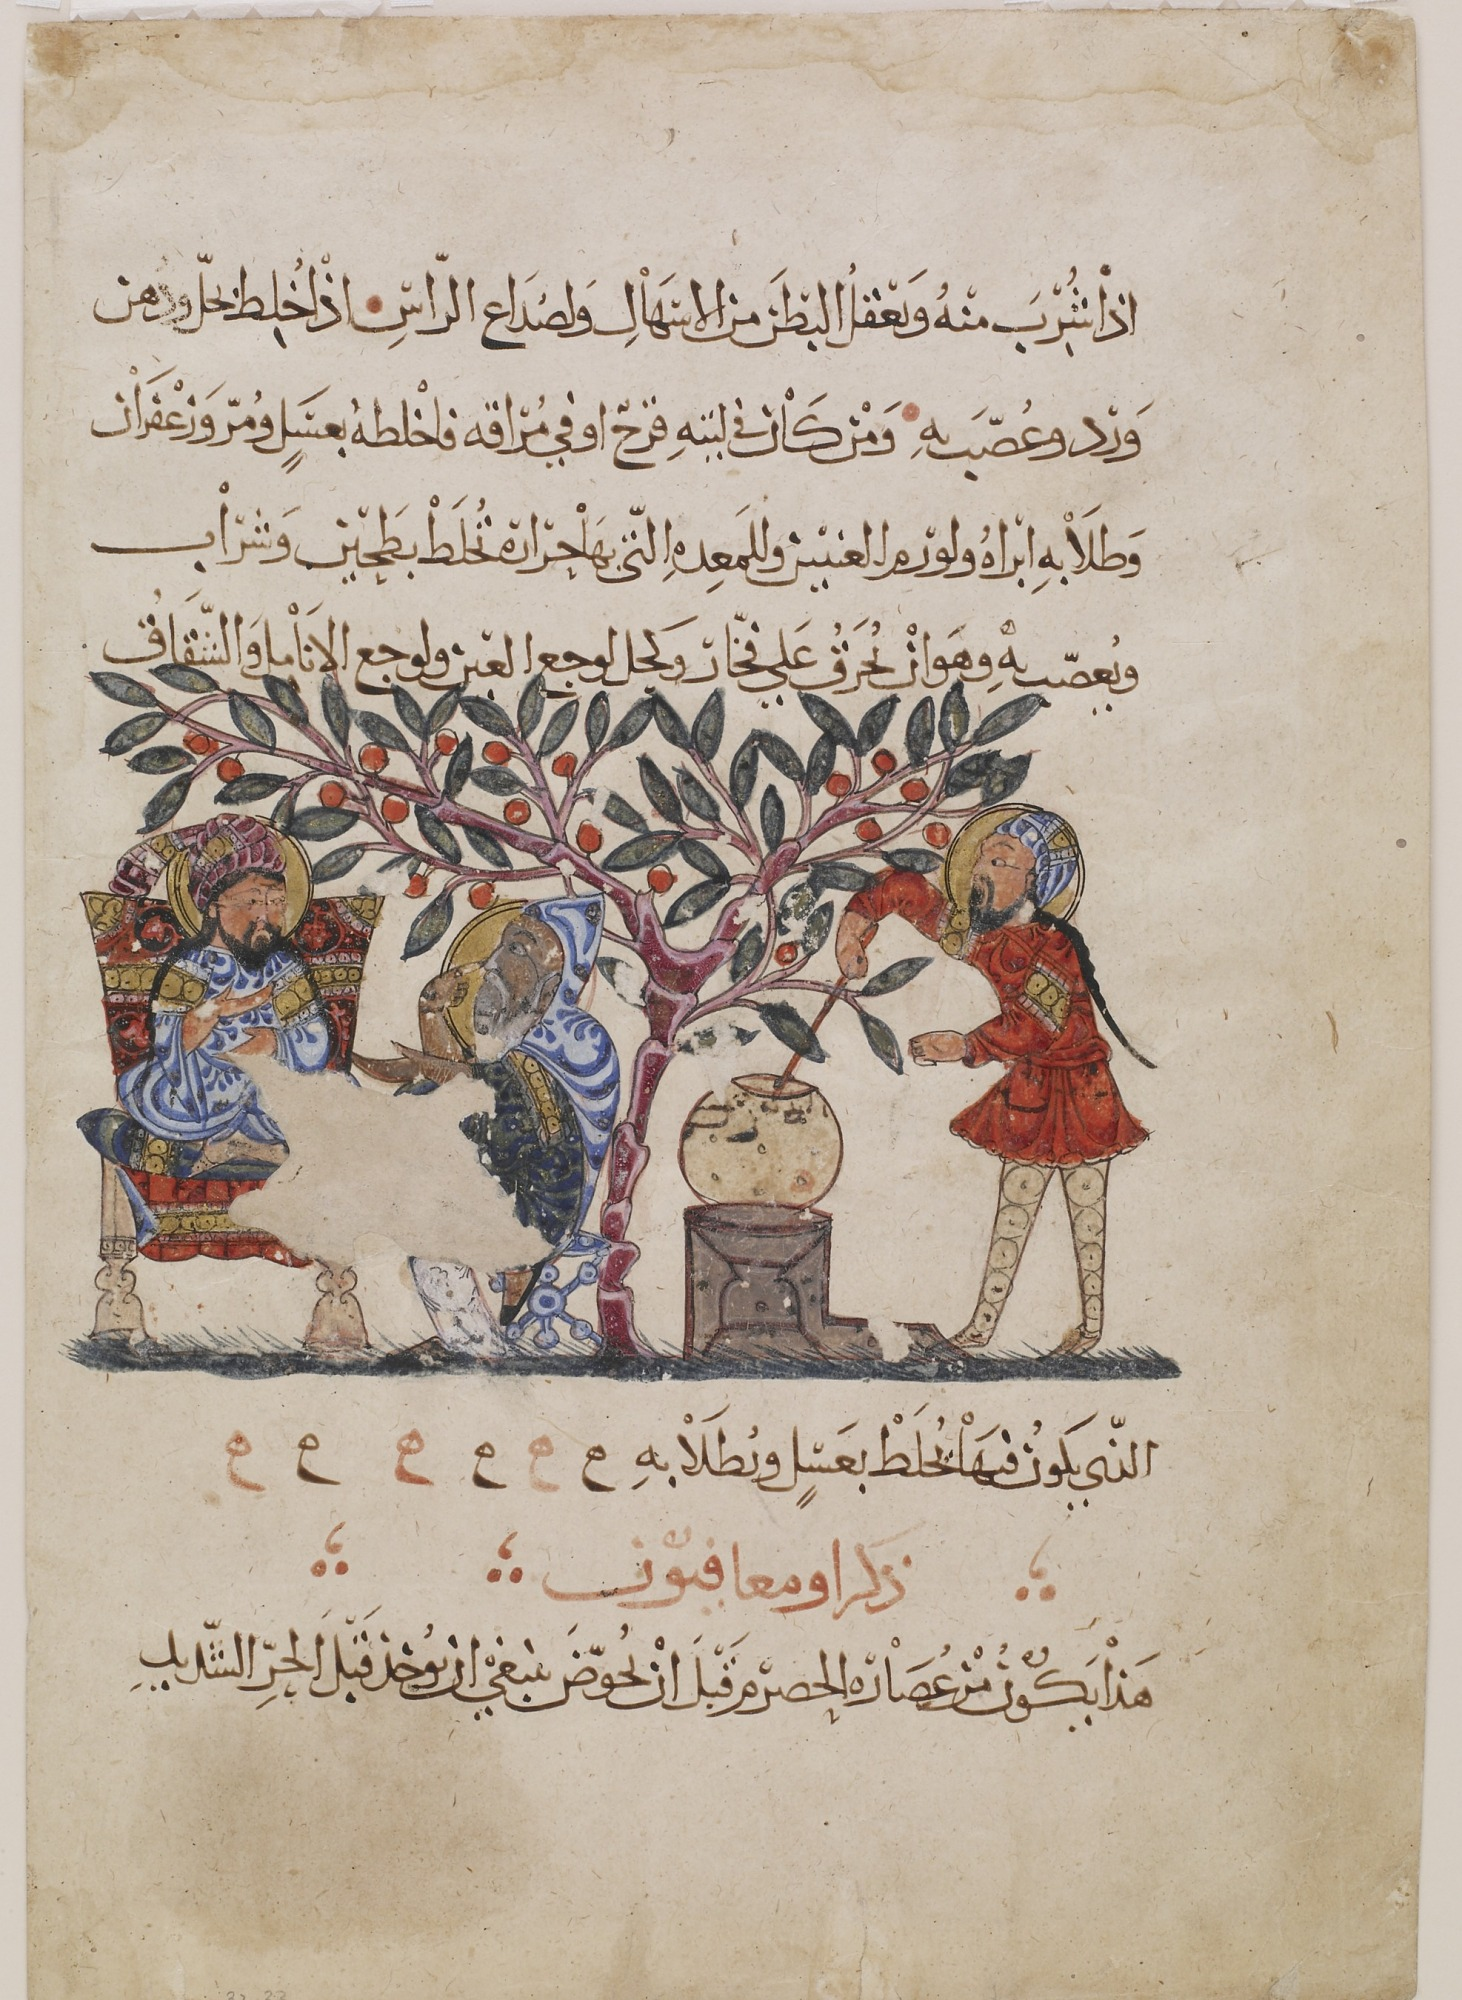 Folio from an Arabic translation of De materia medica by Dioscorides (ca. 40-90 C.E.); recto: text; verso: Preparation of medicine from the flower of the wild vine